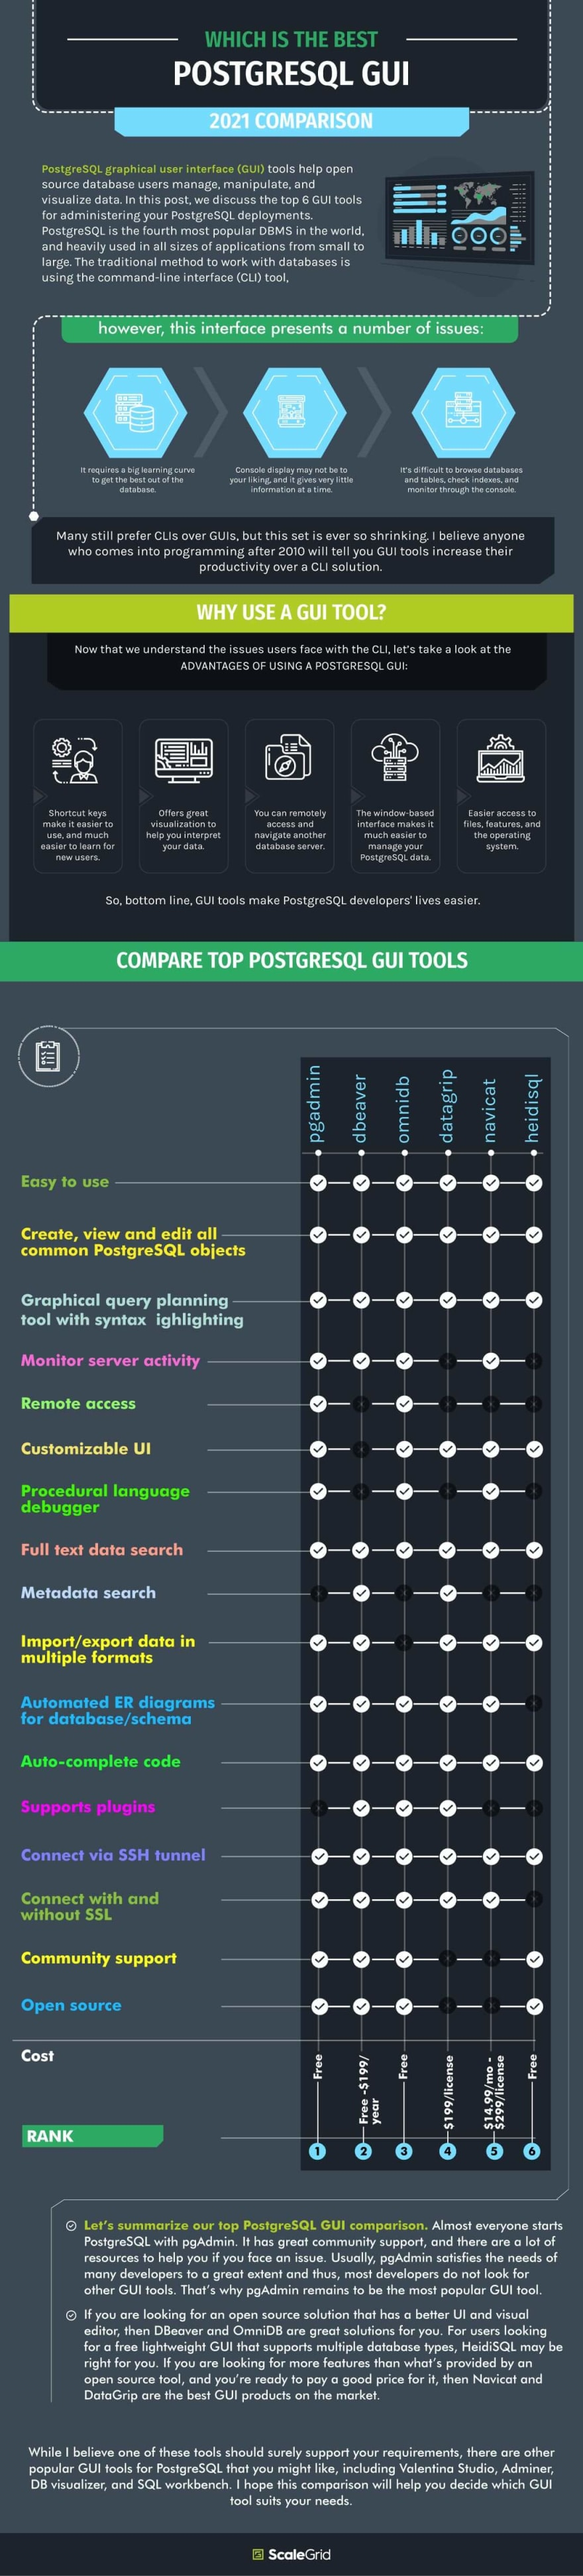 Which Is The Best PostgreSQL GUI? Infographic by ScaleGrid